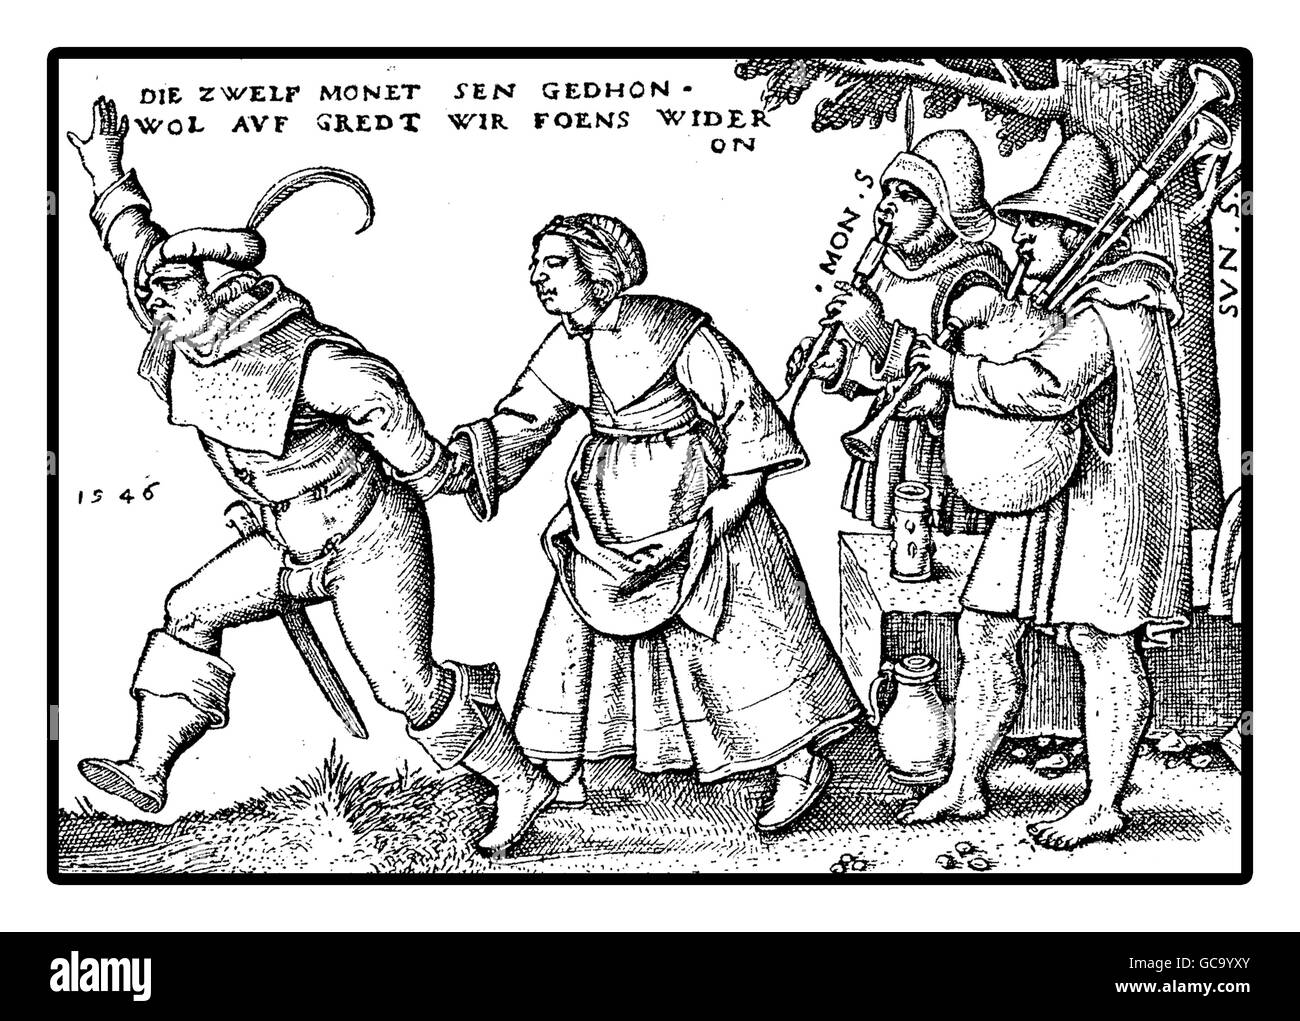 Year 1546, Peasants celebrate a fest dancing and playing  Several festivals took place during the year related to - Stock Image